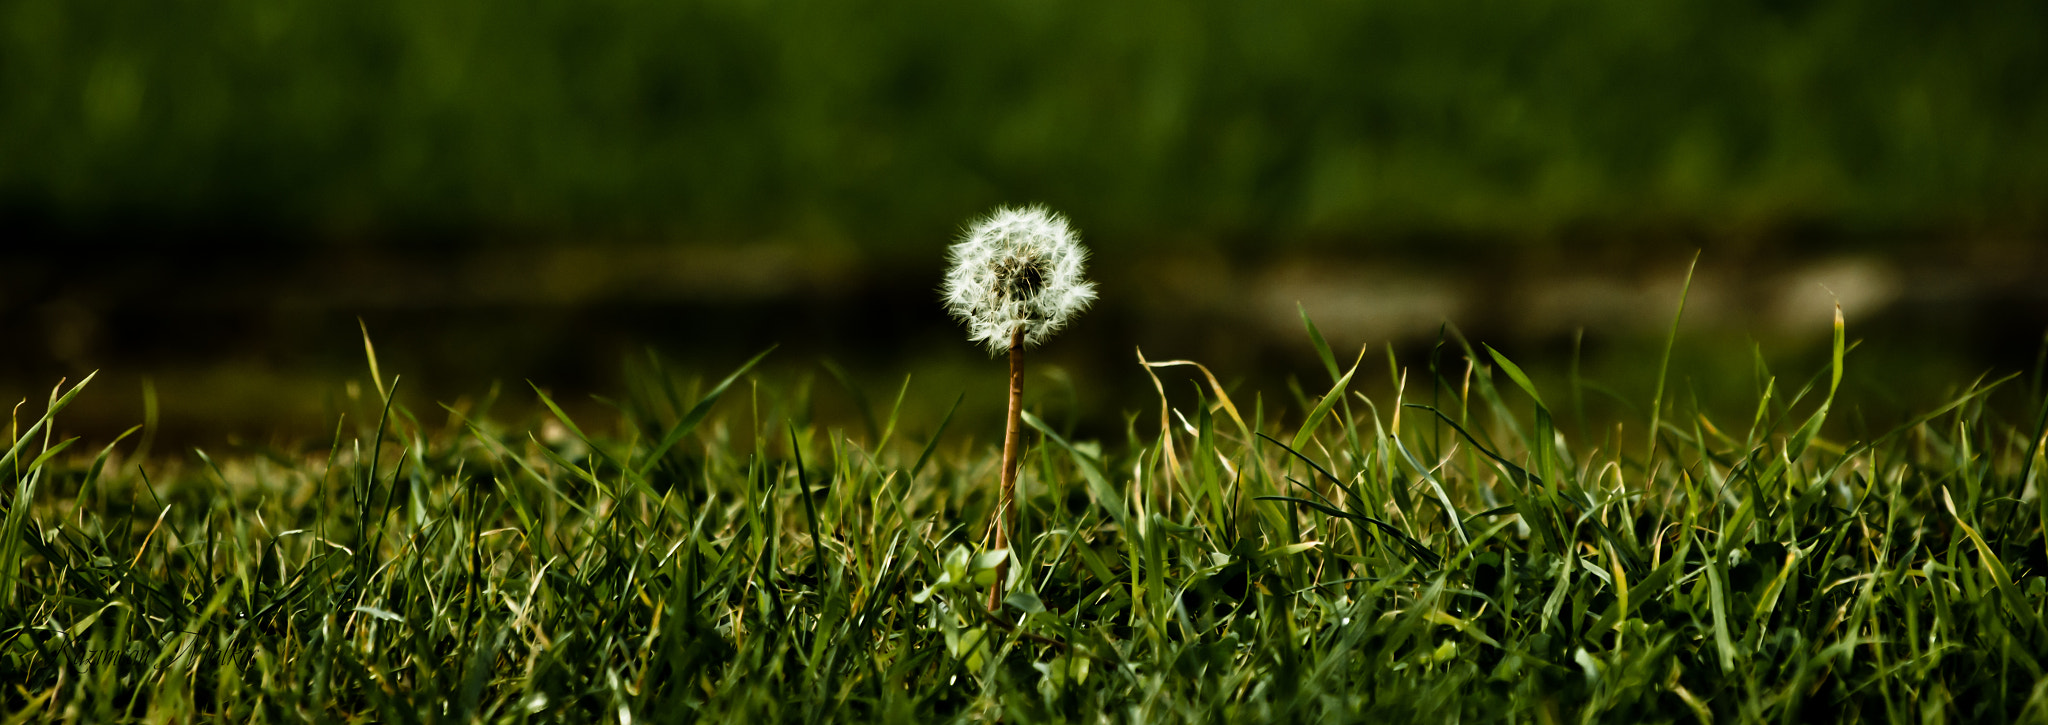 Photograph dandelion by Kazımcan Malkoç on 500px